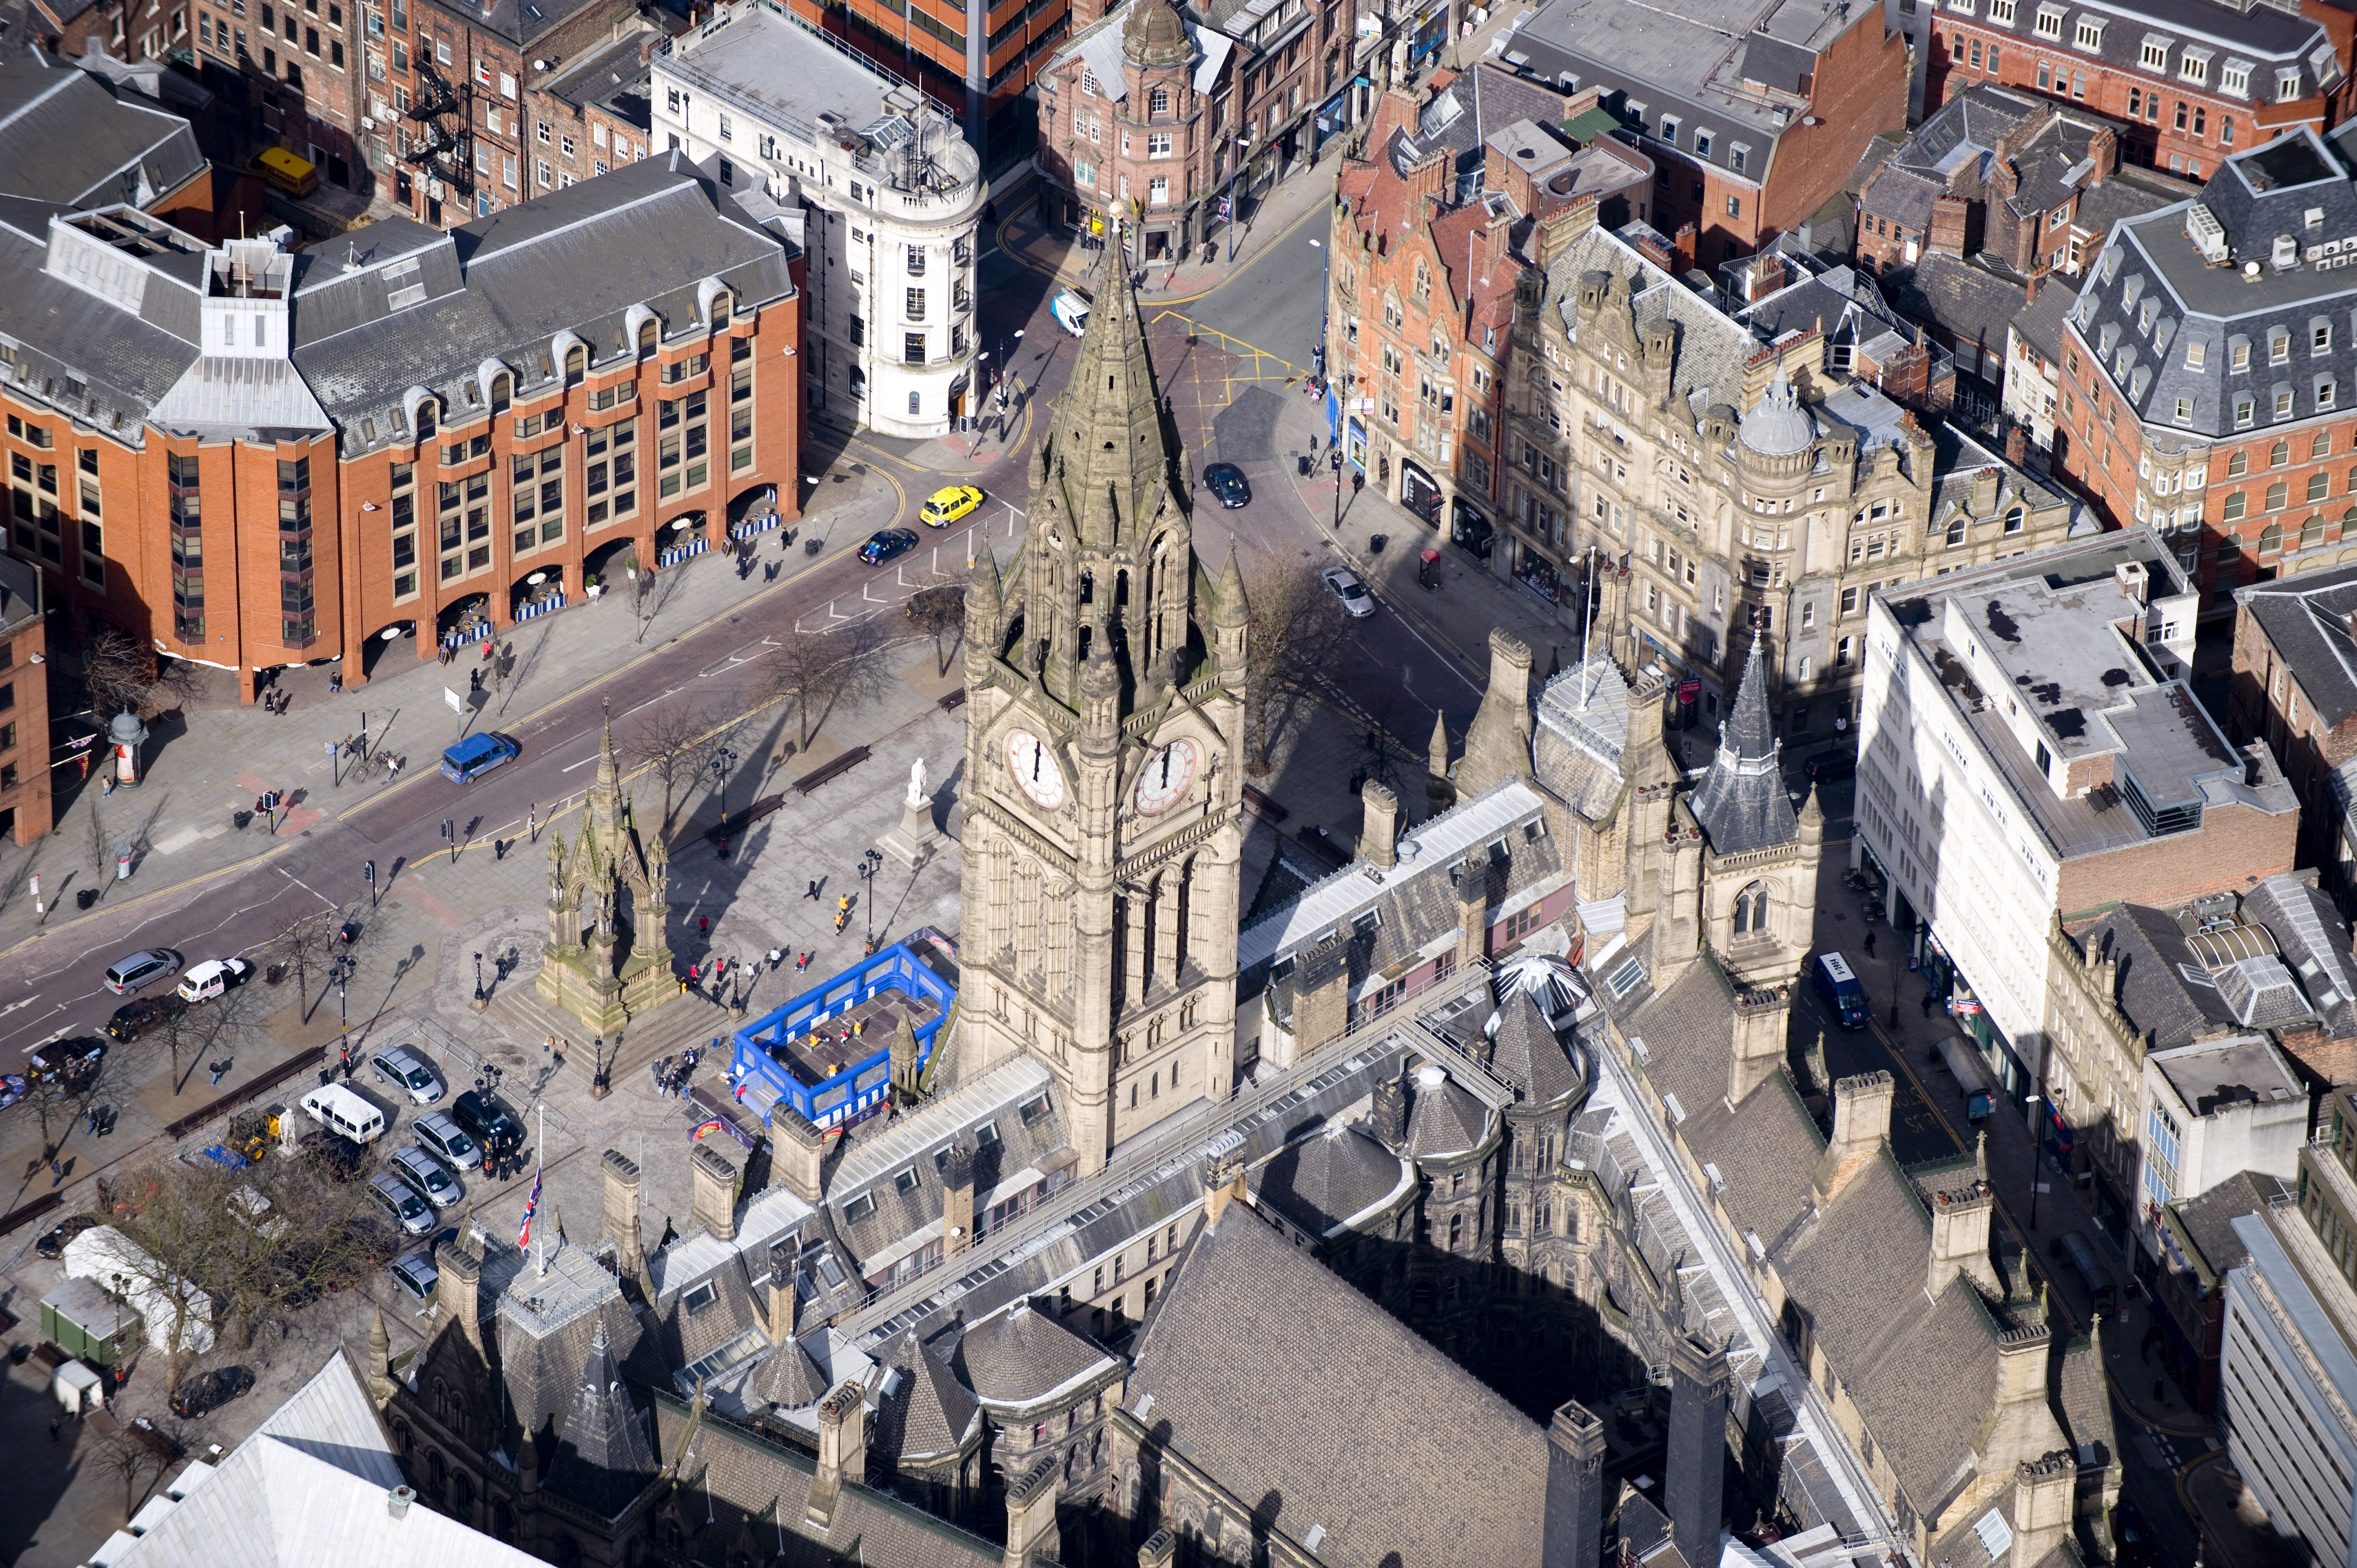 Overview of Manchester city center